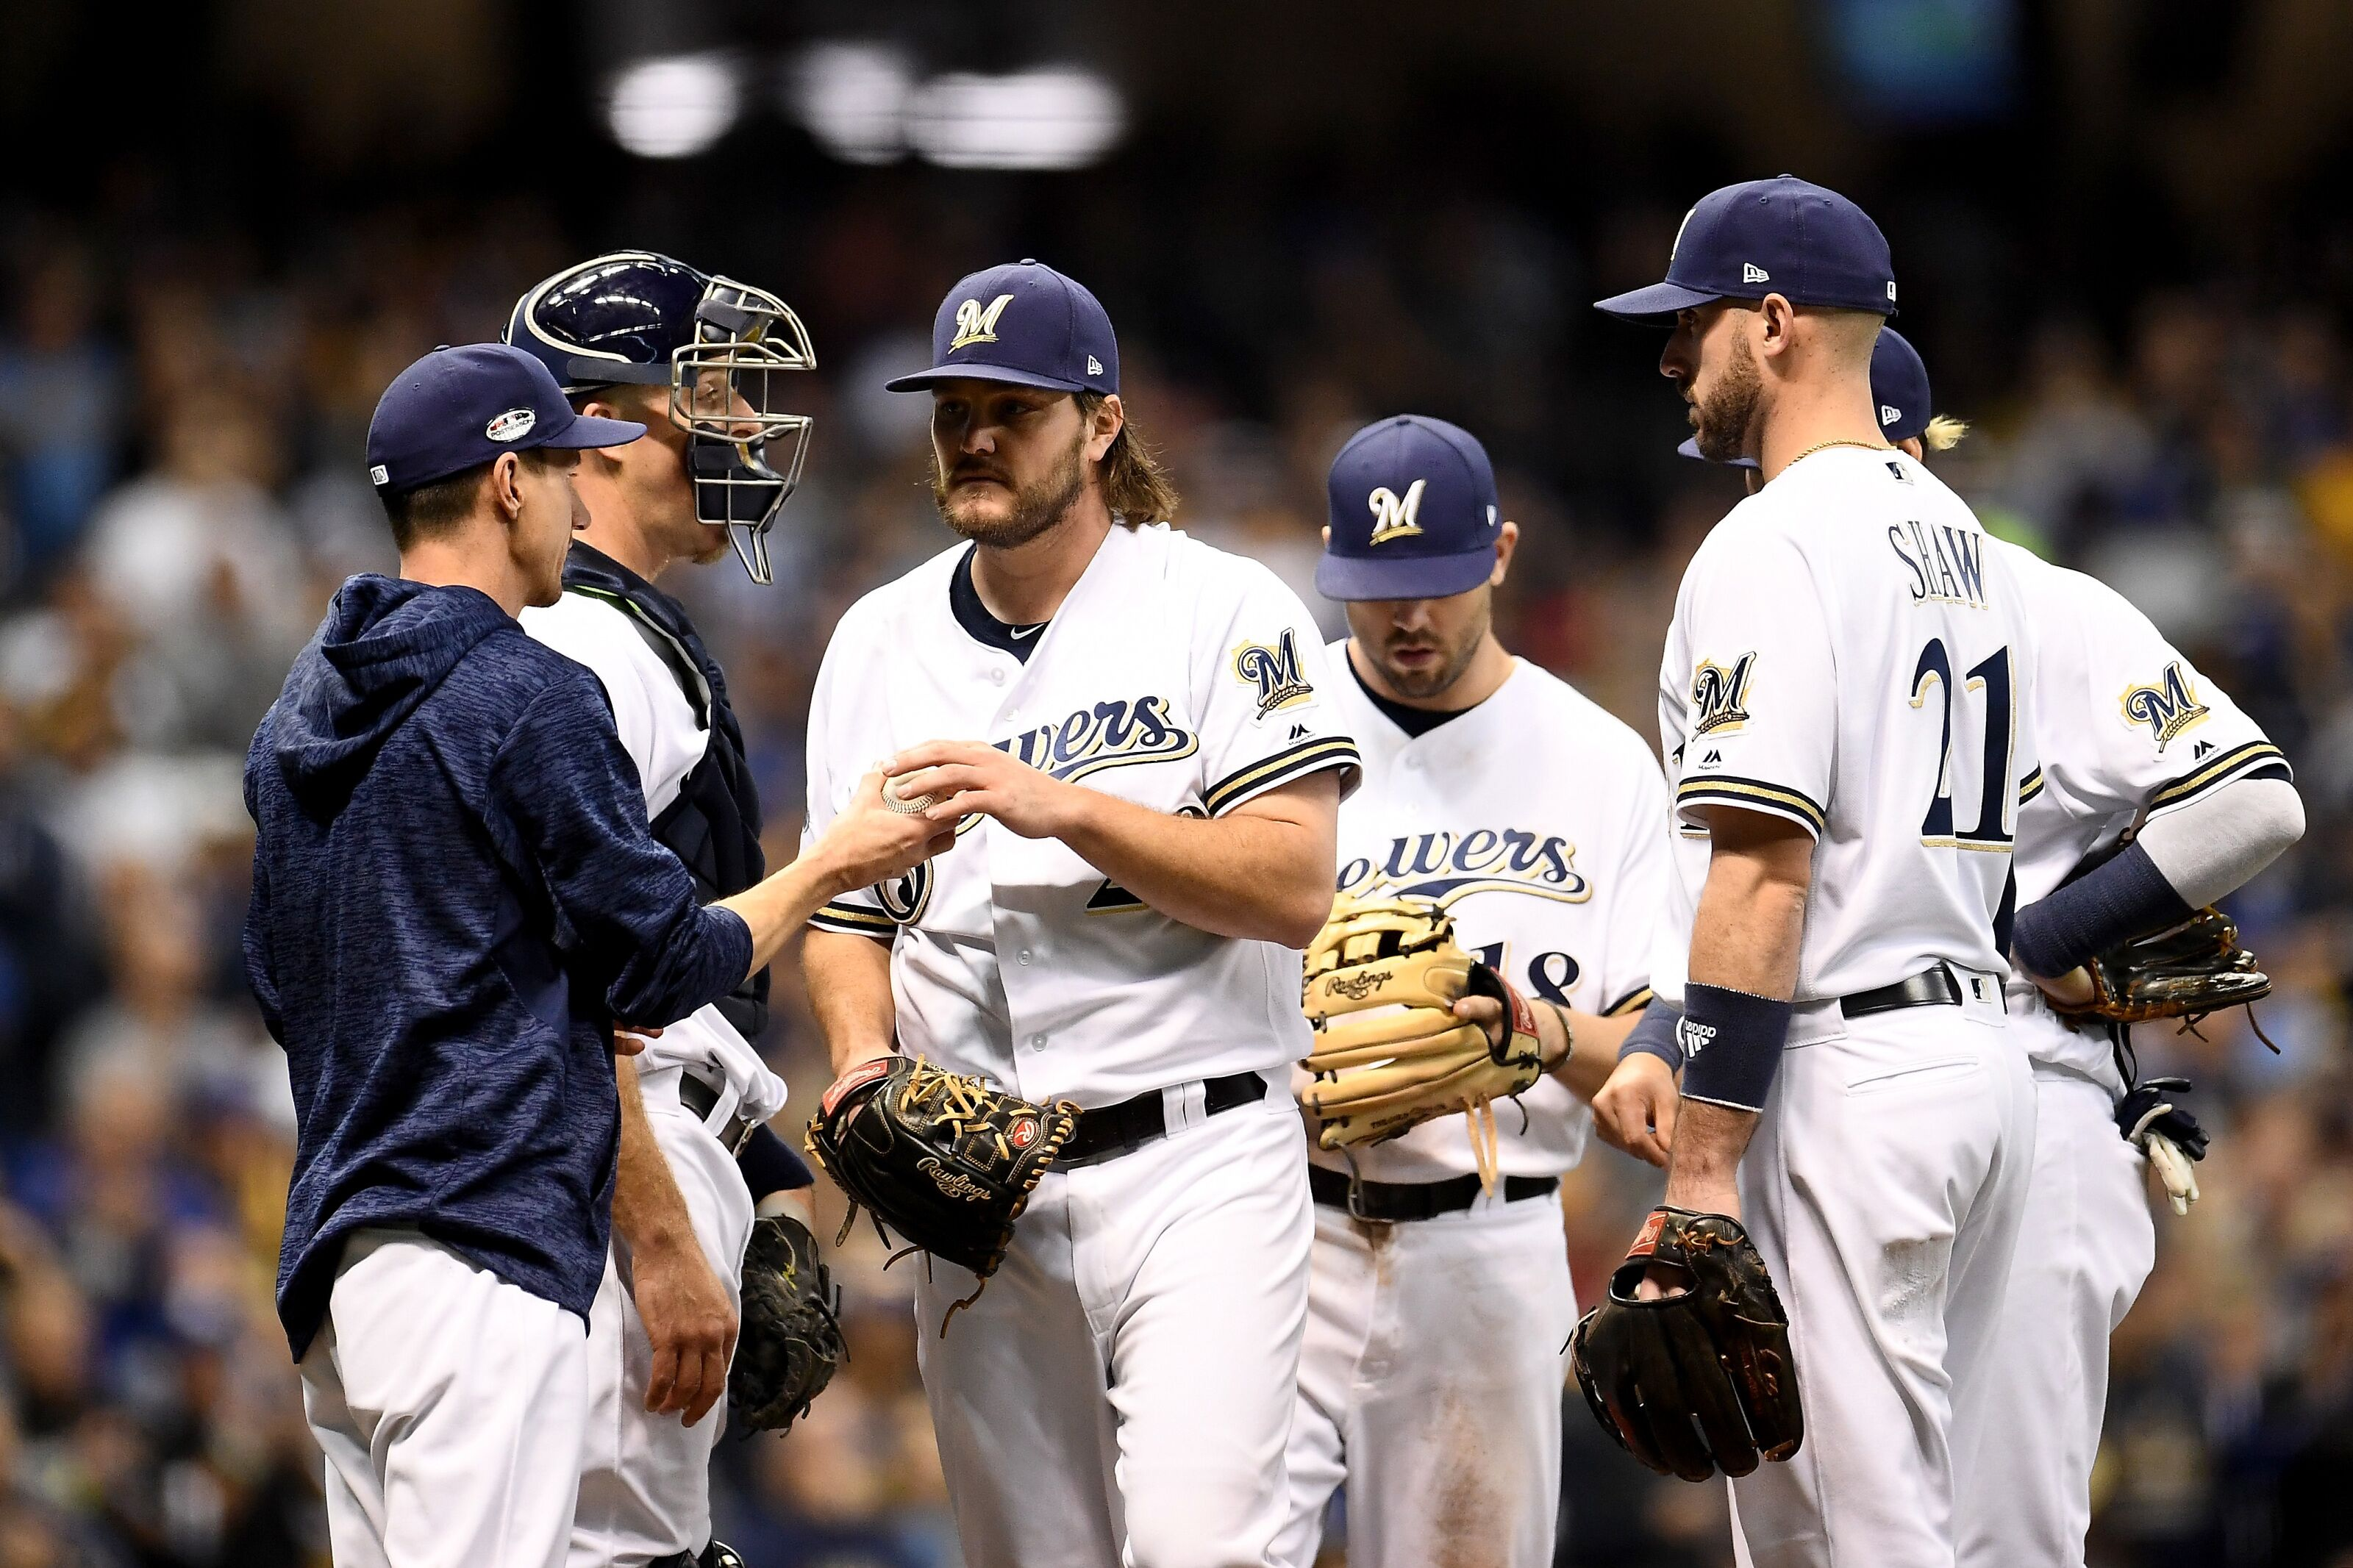 Will Wade Miley be a part of the Brewers Rotation in 2020?